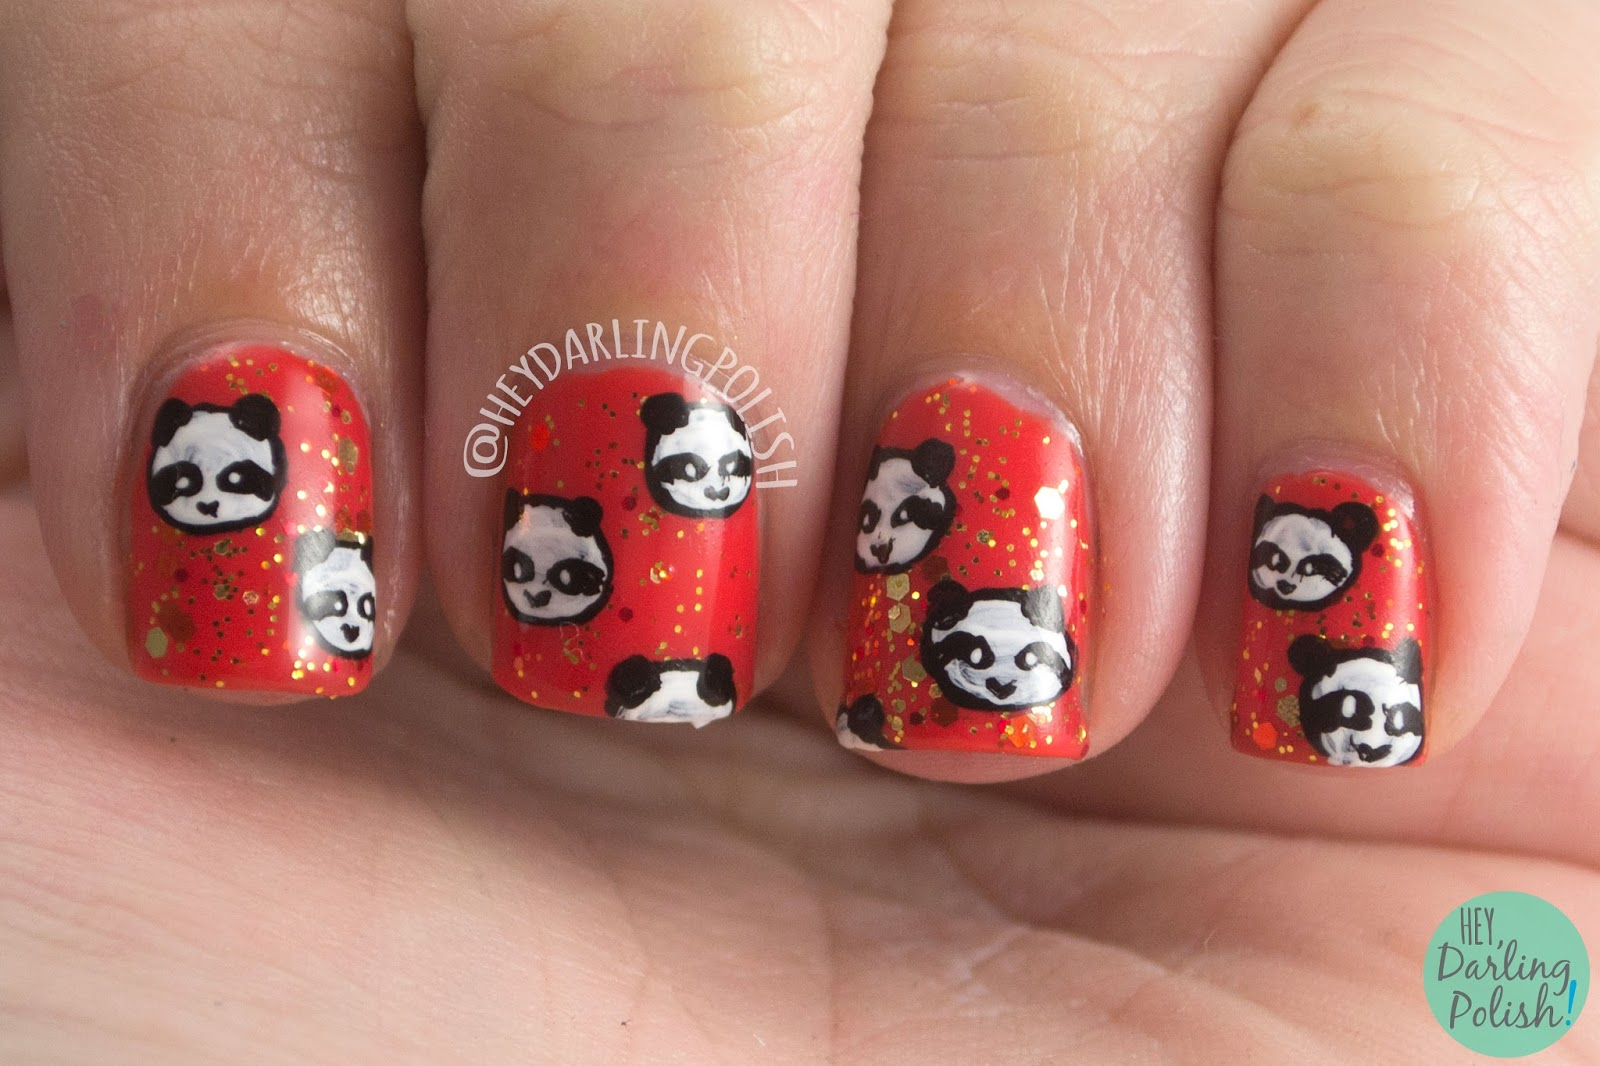 nails, nail art, nail polish, pandas, panda, orange, glitter, hey darling polish, naillinkup, nail art ideas linkup